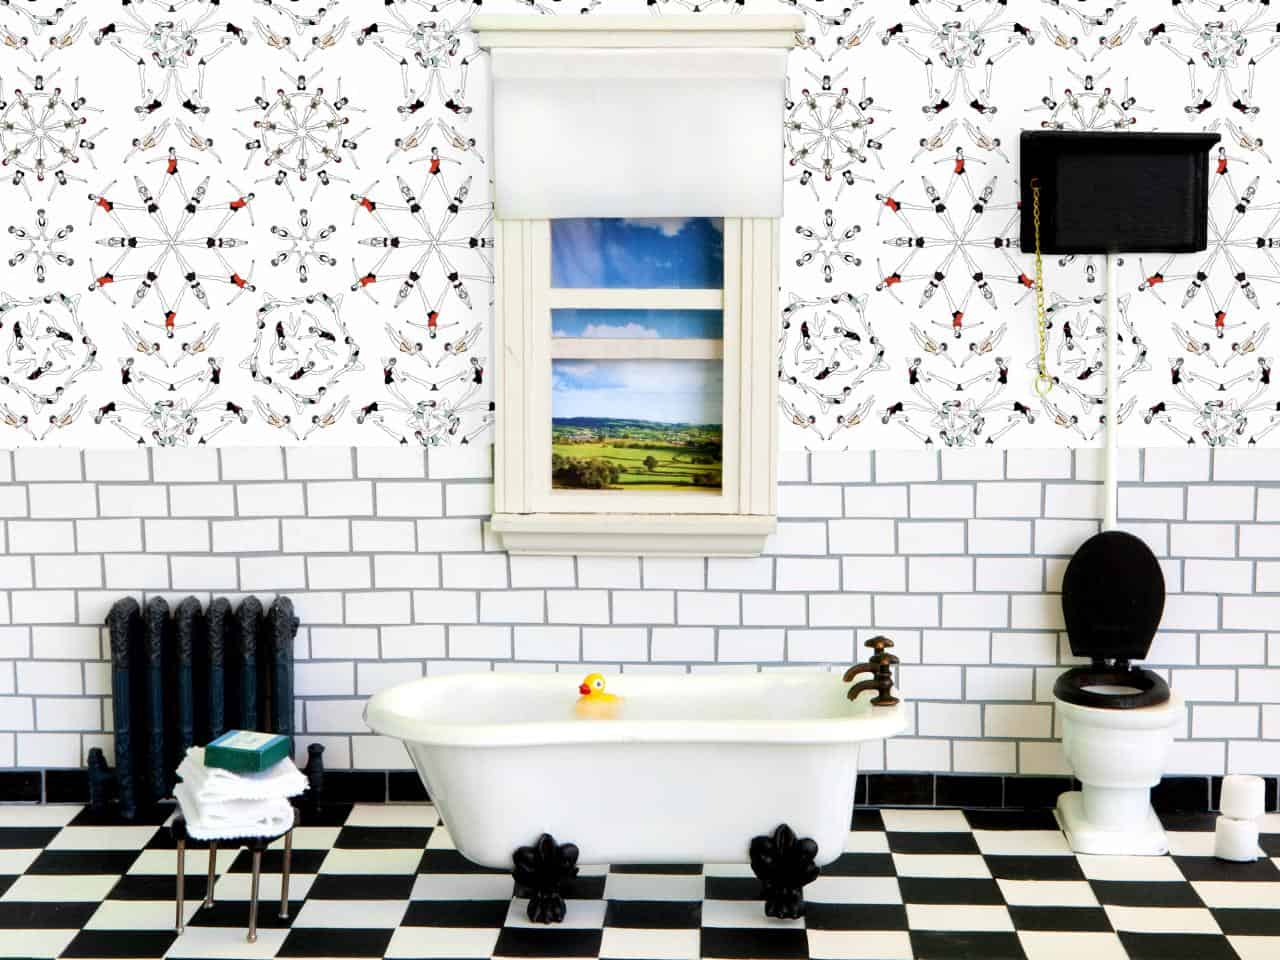 Adding a retro wallpaper to a space can give you the retro feel you may seek to add to your home